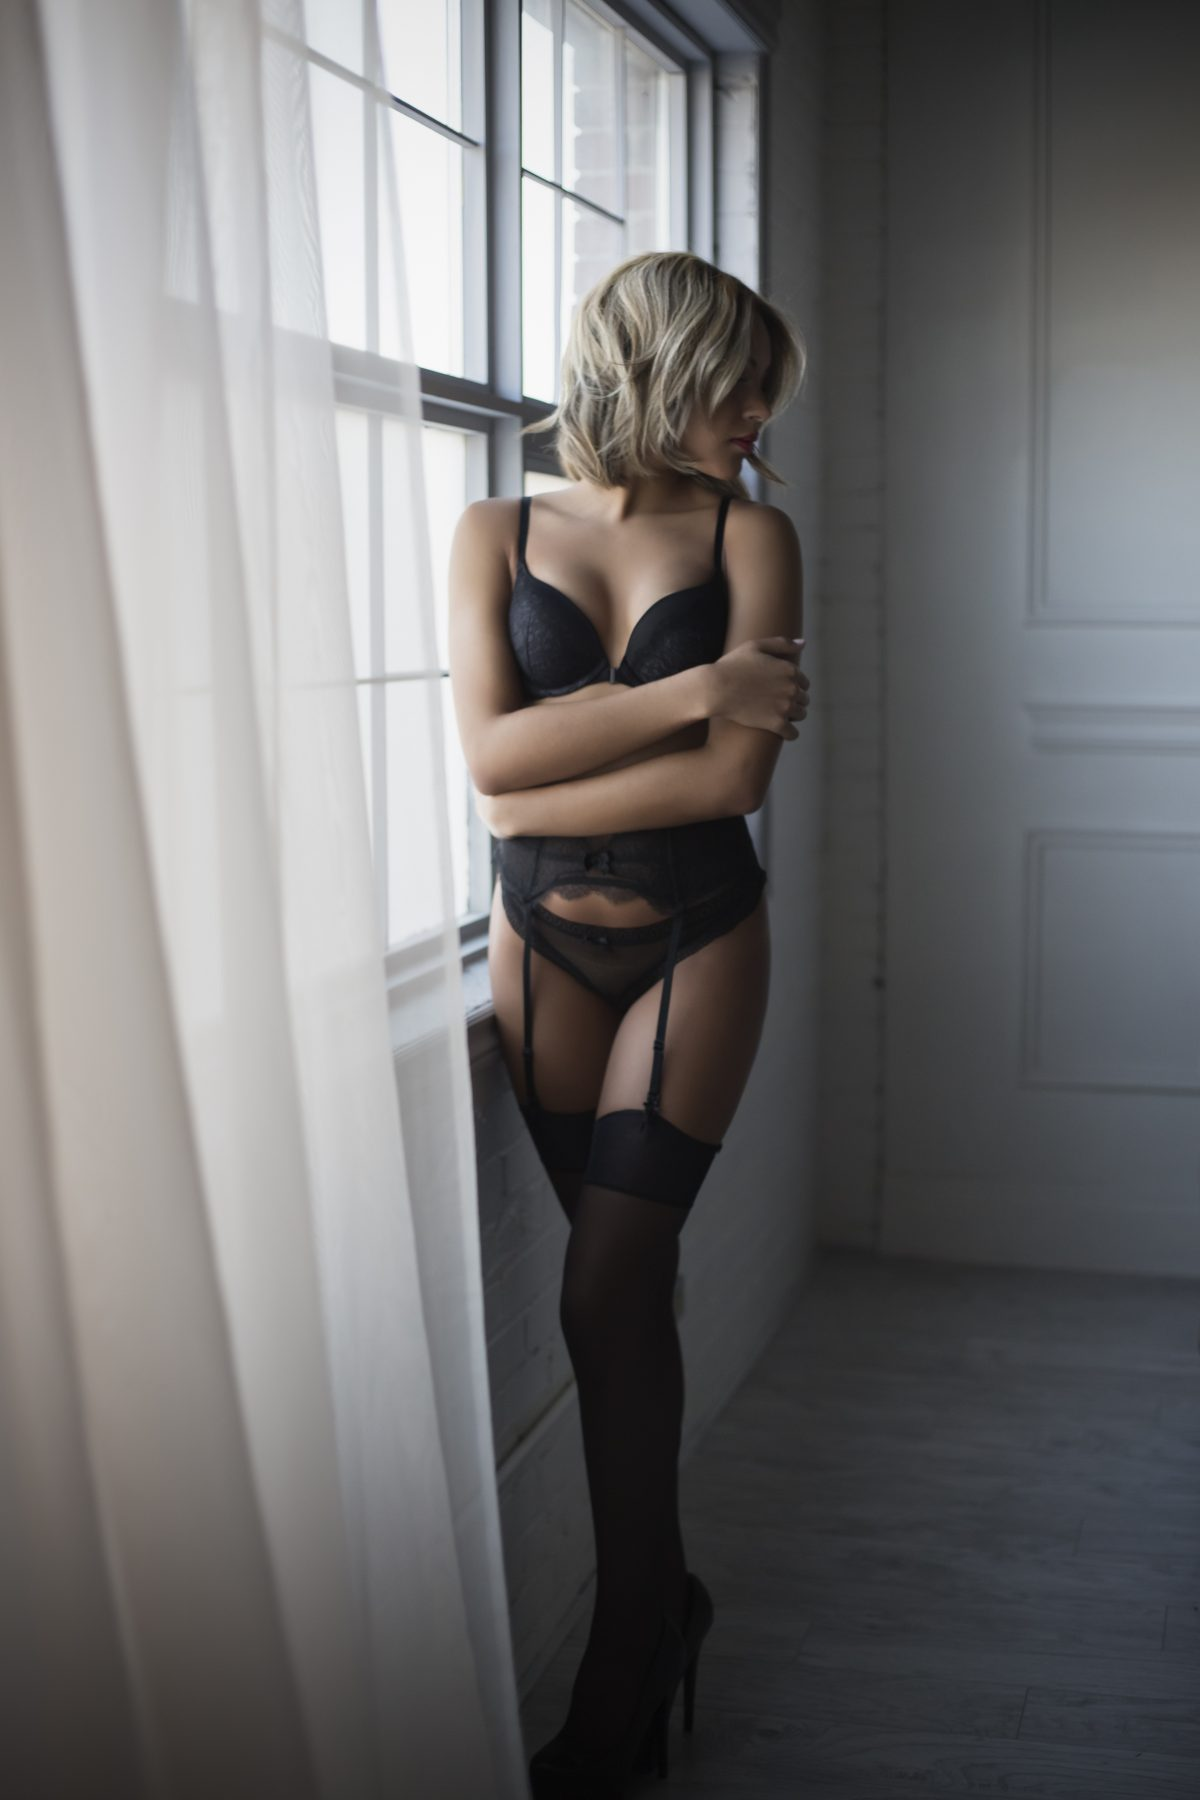 Toronto escorts companion upscale Summer Duo Non-smoking Young Slender Petite Tall Natural Blonde Brunette Exotic Small New